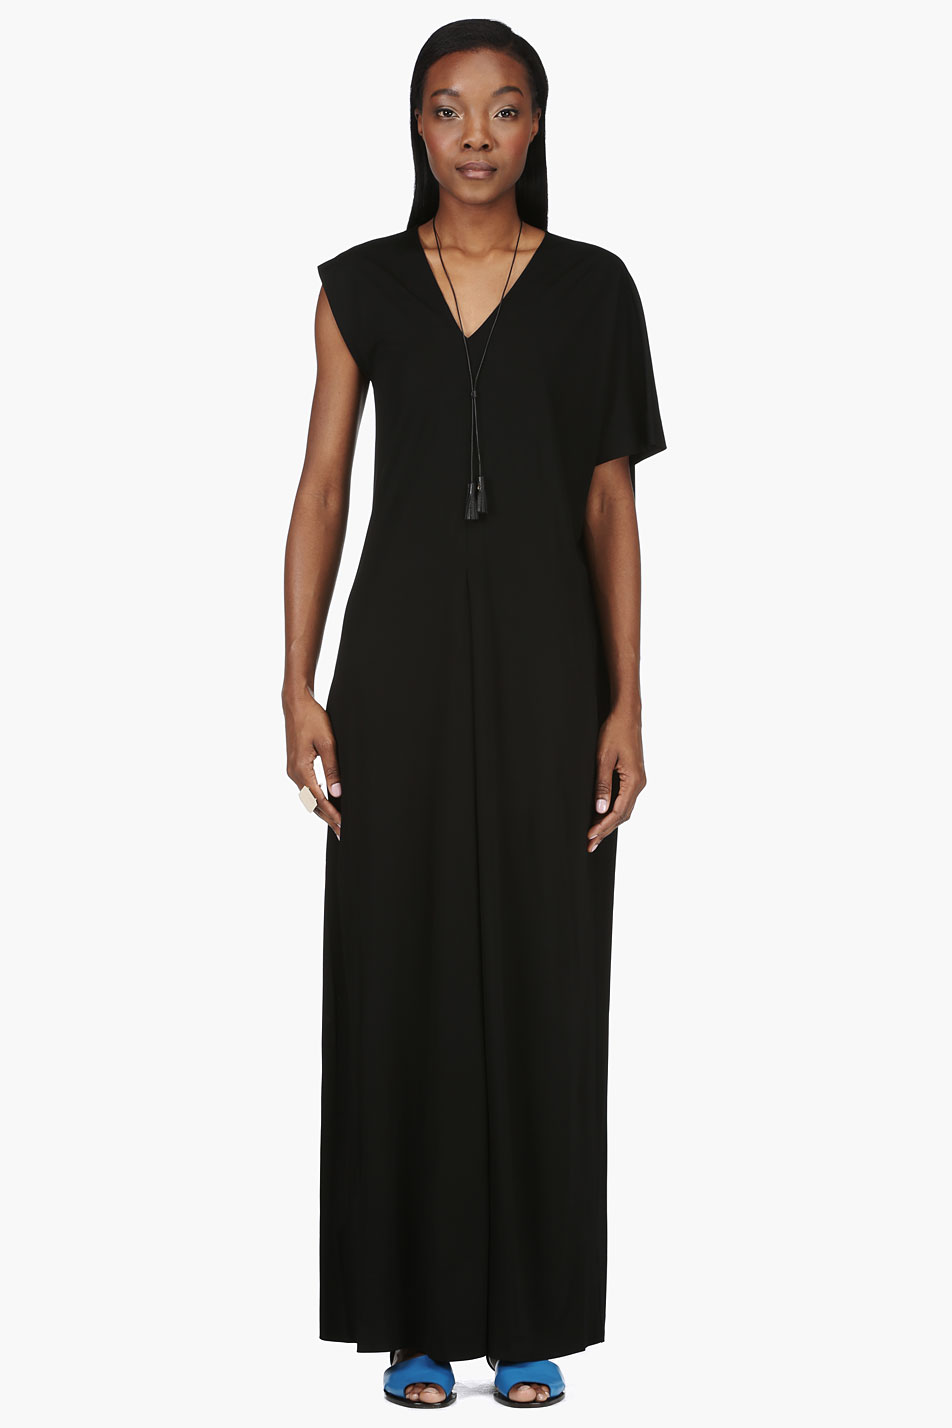 maison martin margiela black asymmetric grecian dress